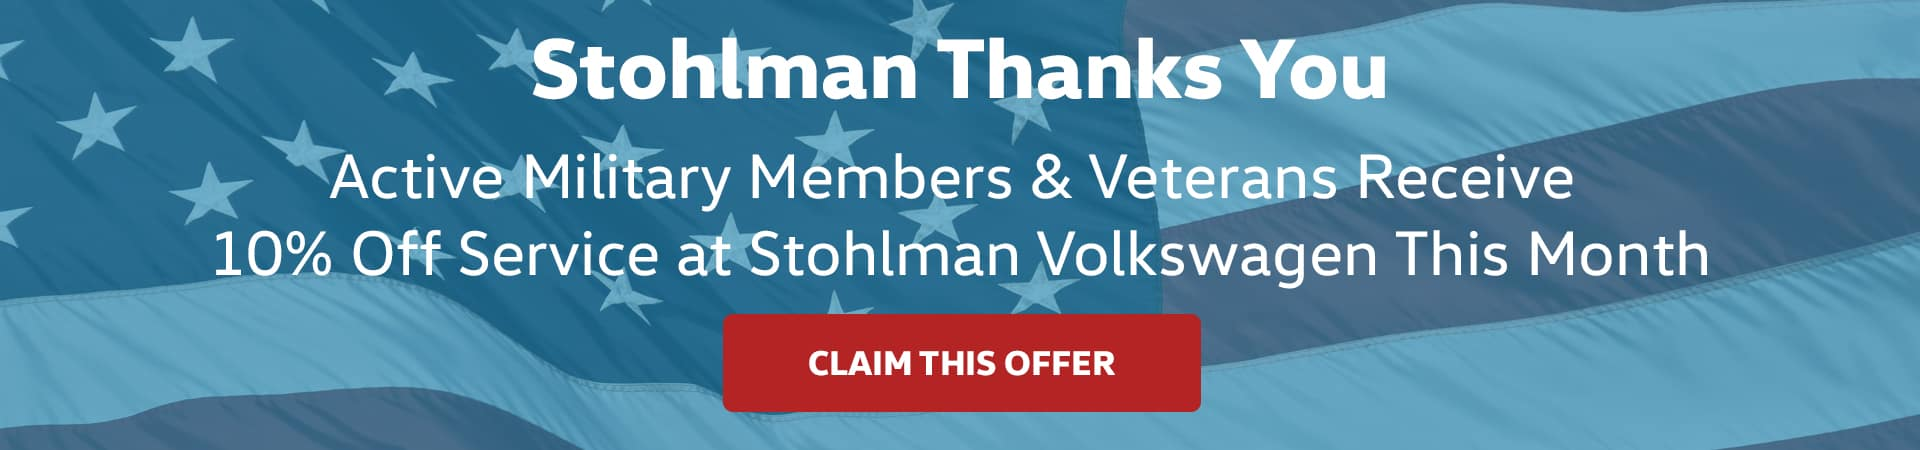 Active military members & veterans receive 10% off service this month